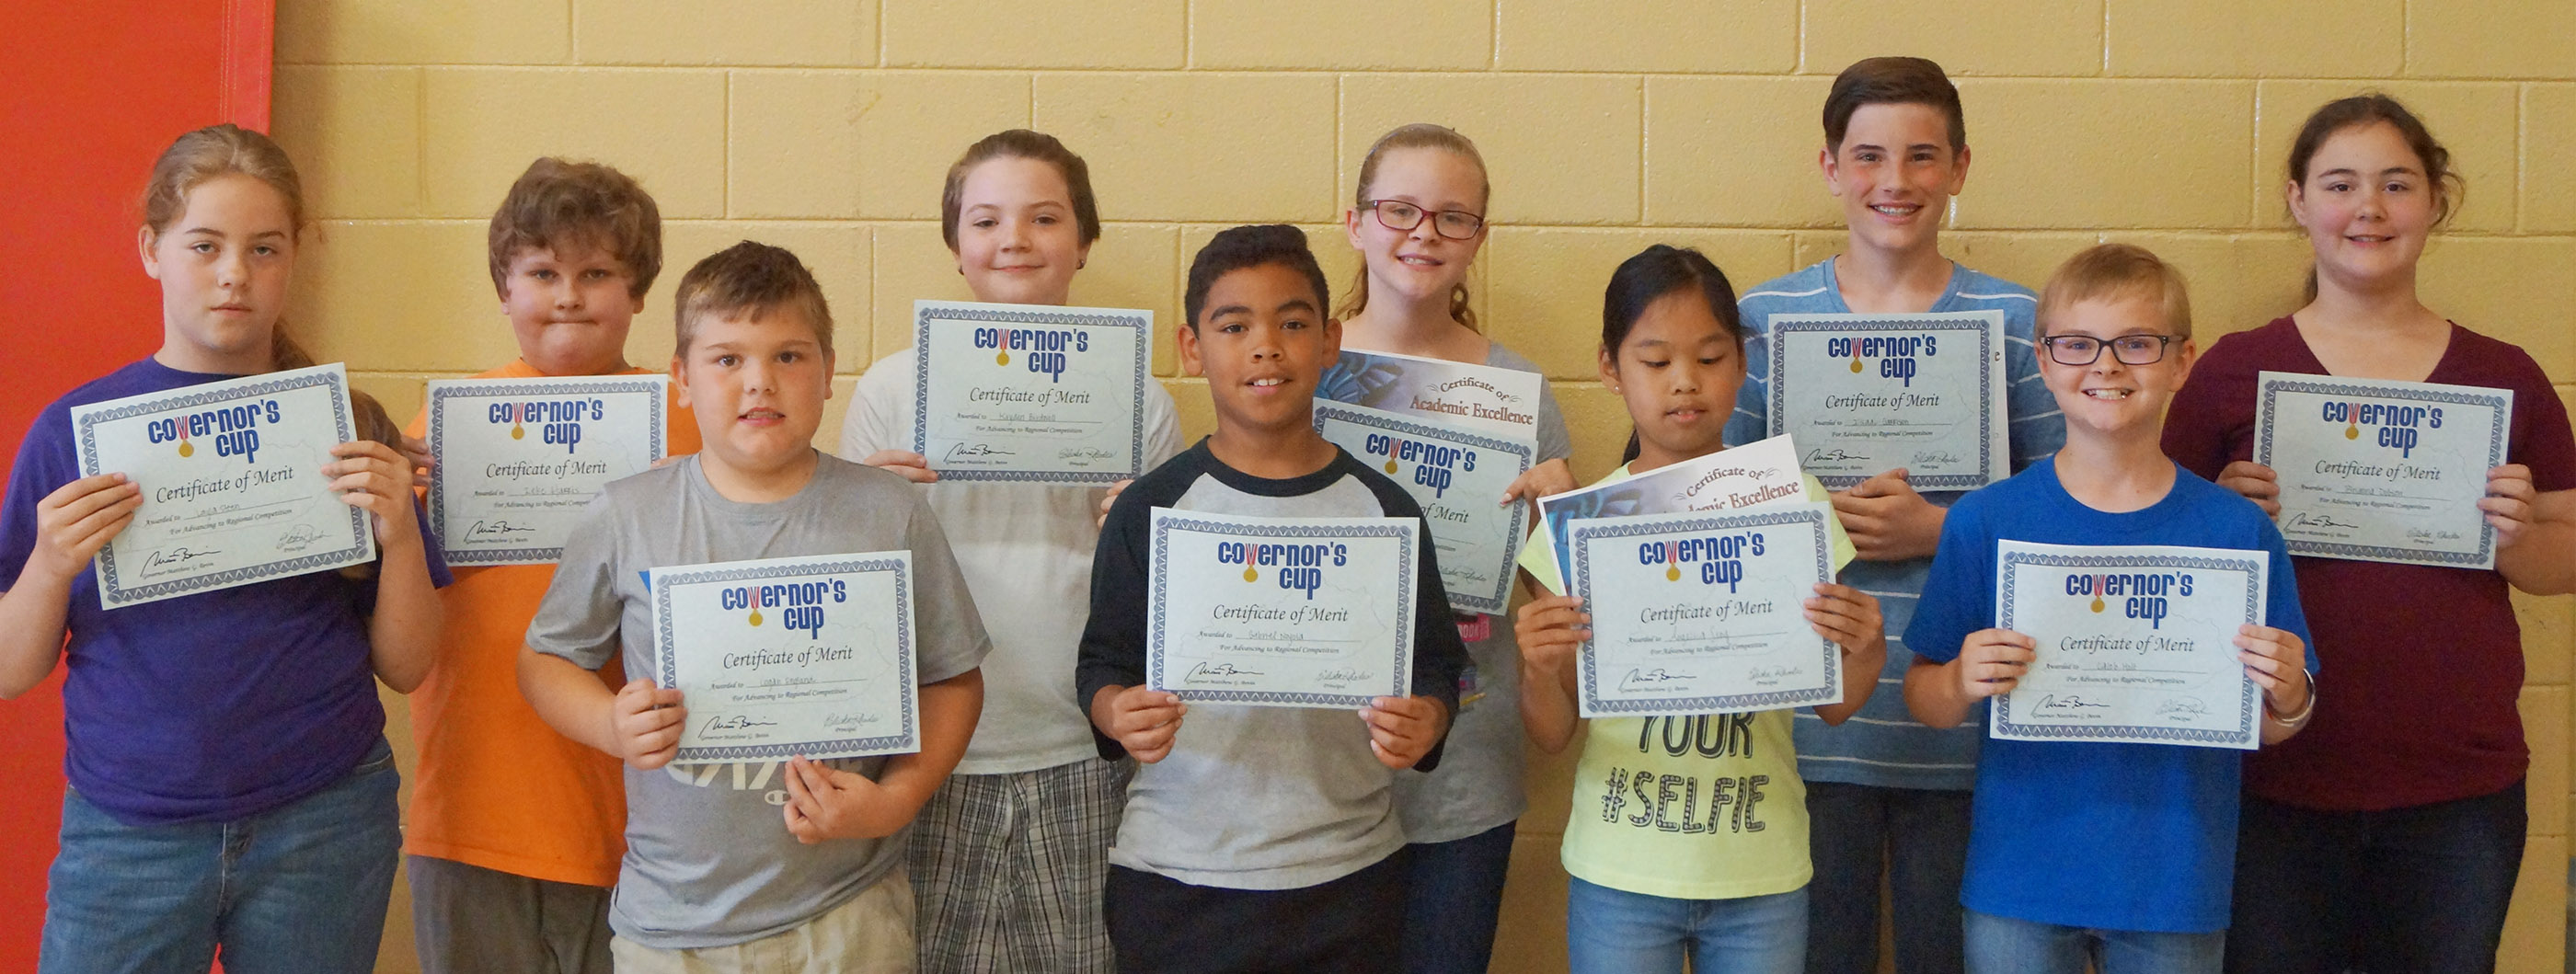 Academic team award winners are, from left, front, fourth-graders Logan England and Gabriel Noyola and fifth-graders Angelica Seng and Caleb Holt. Back, fifth-grader Layla Steen, fourth-grader Zeke Harris and fifth-graders Kayden Birdwell, Karlie Cox, Isaac Garrison and Brianna Dobson. Absent from the photo is fifth-grader Ryan Grubbs.